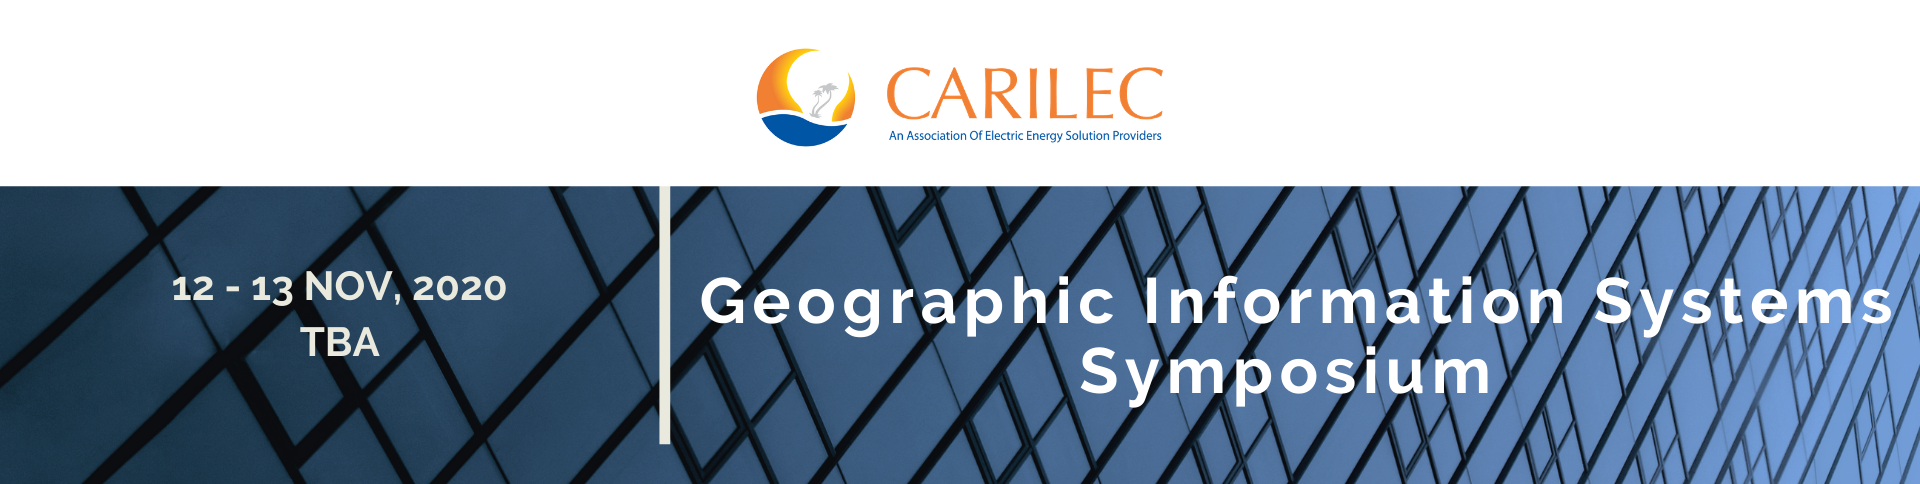 CARILEC GEOGRAPHIC INFORMATION SYSTEMS SYMPOSIUM